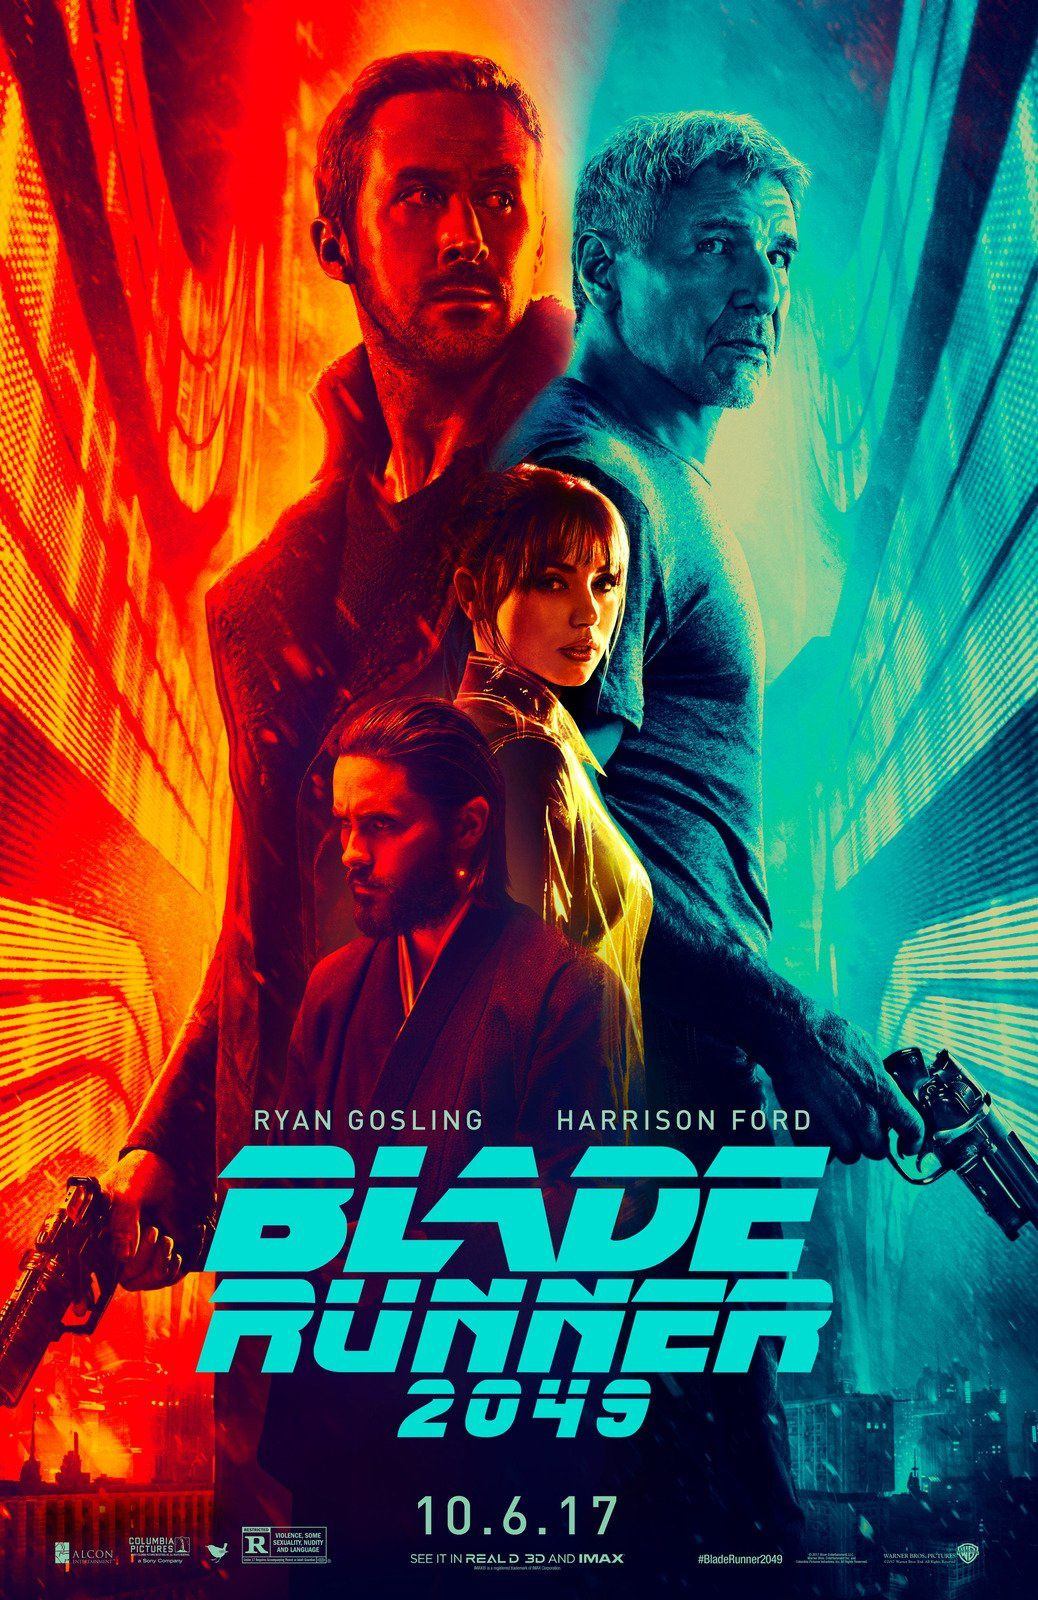 Box-office Etats-Unis : grosse déception pour Blade Runner 2049, leader sans éclat.